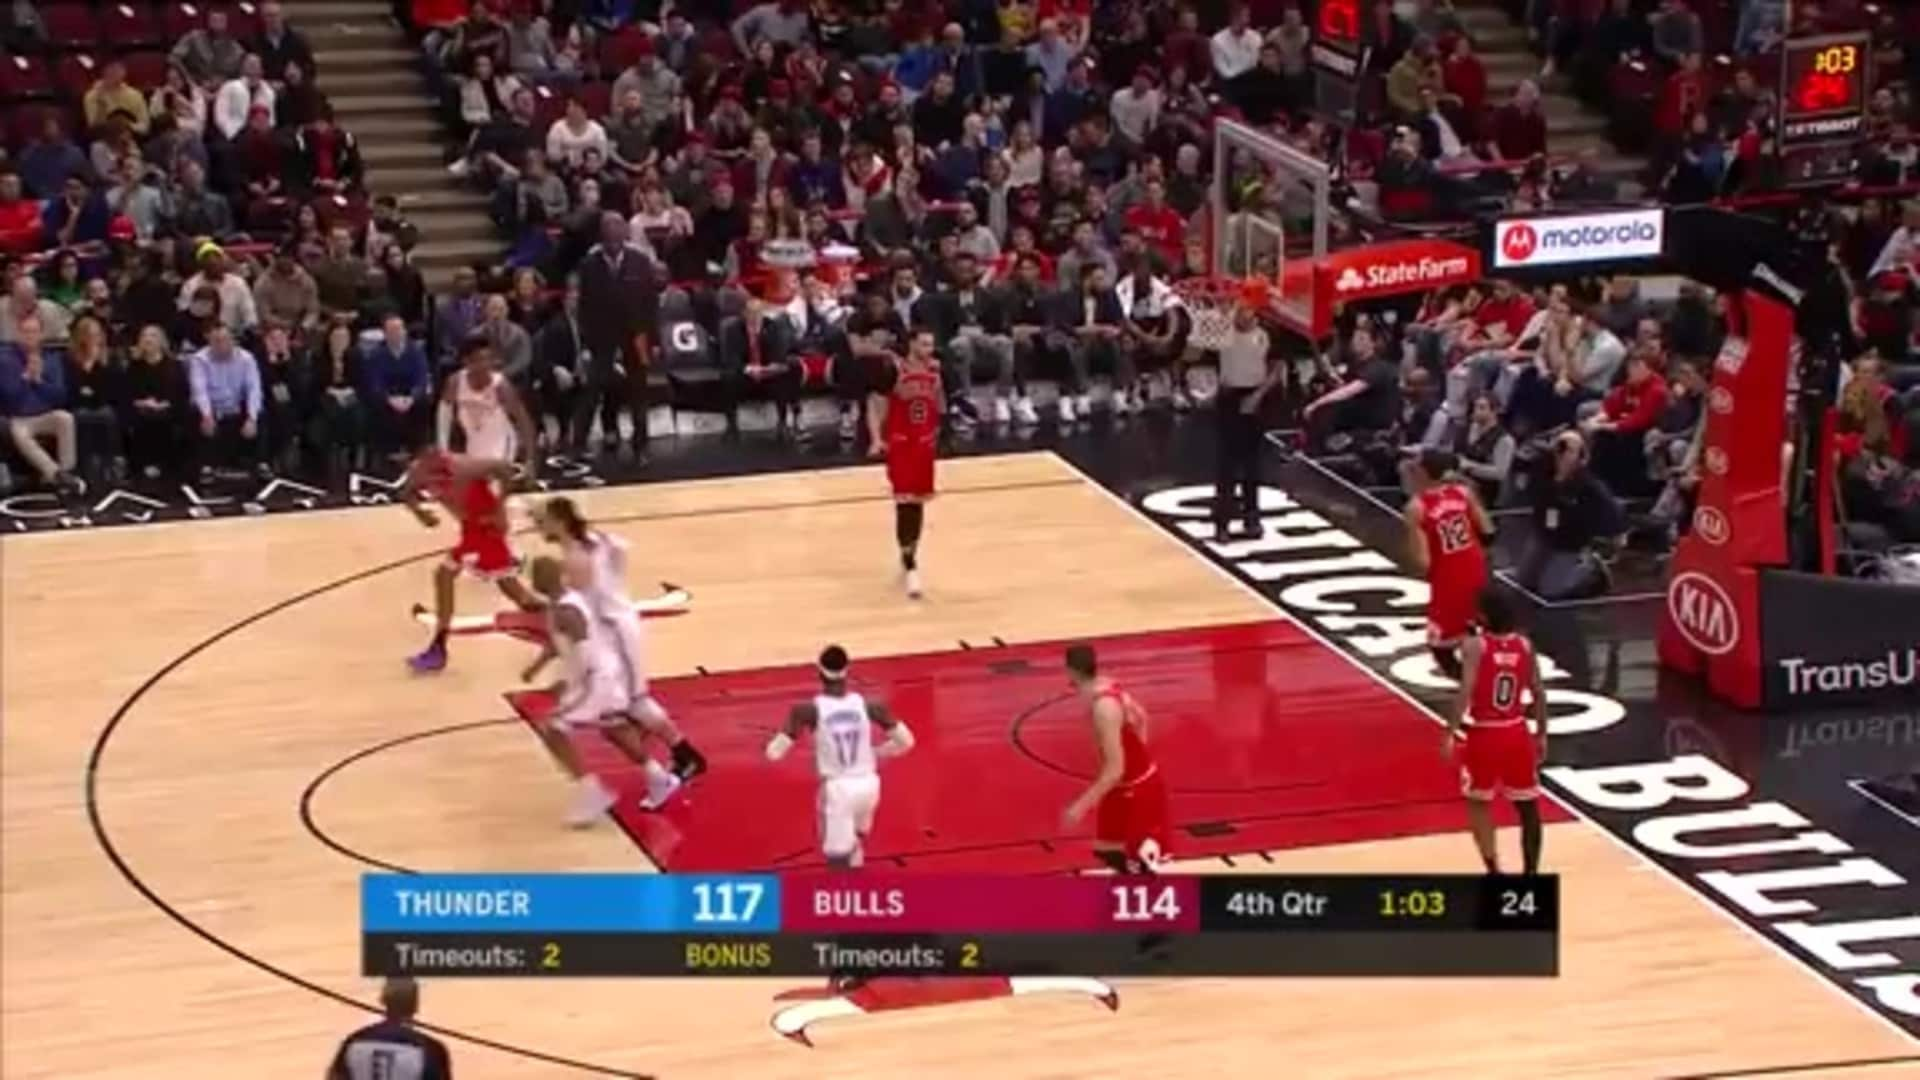 Highlights: Thunder at Bulls